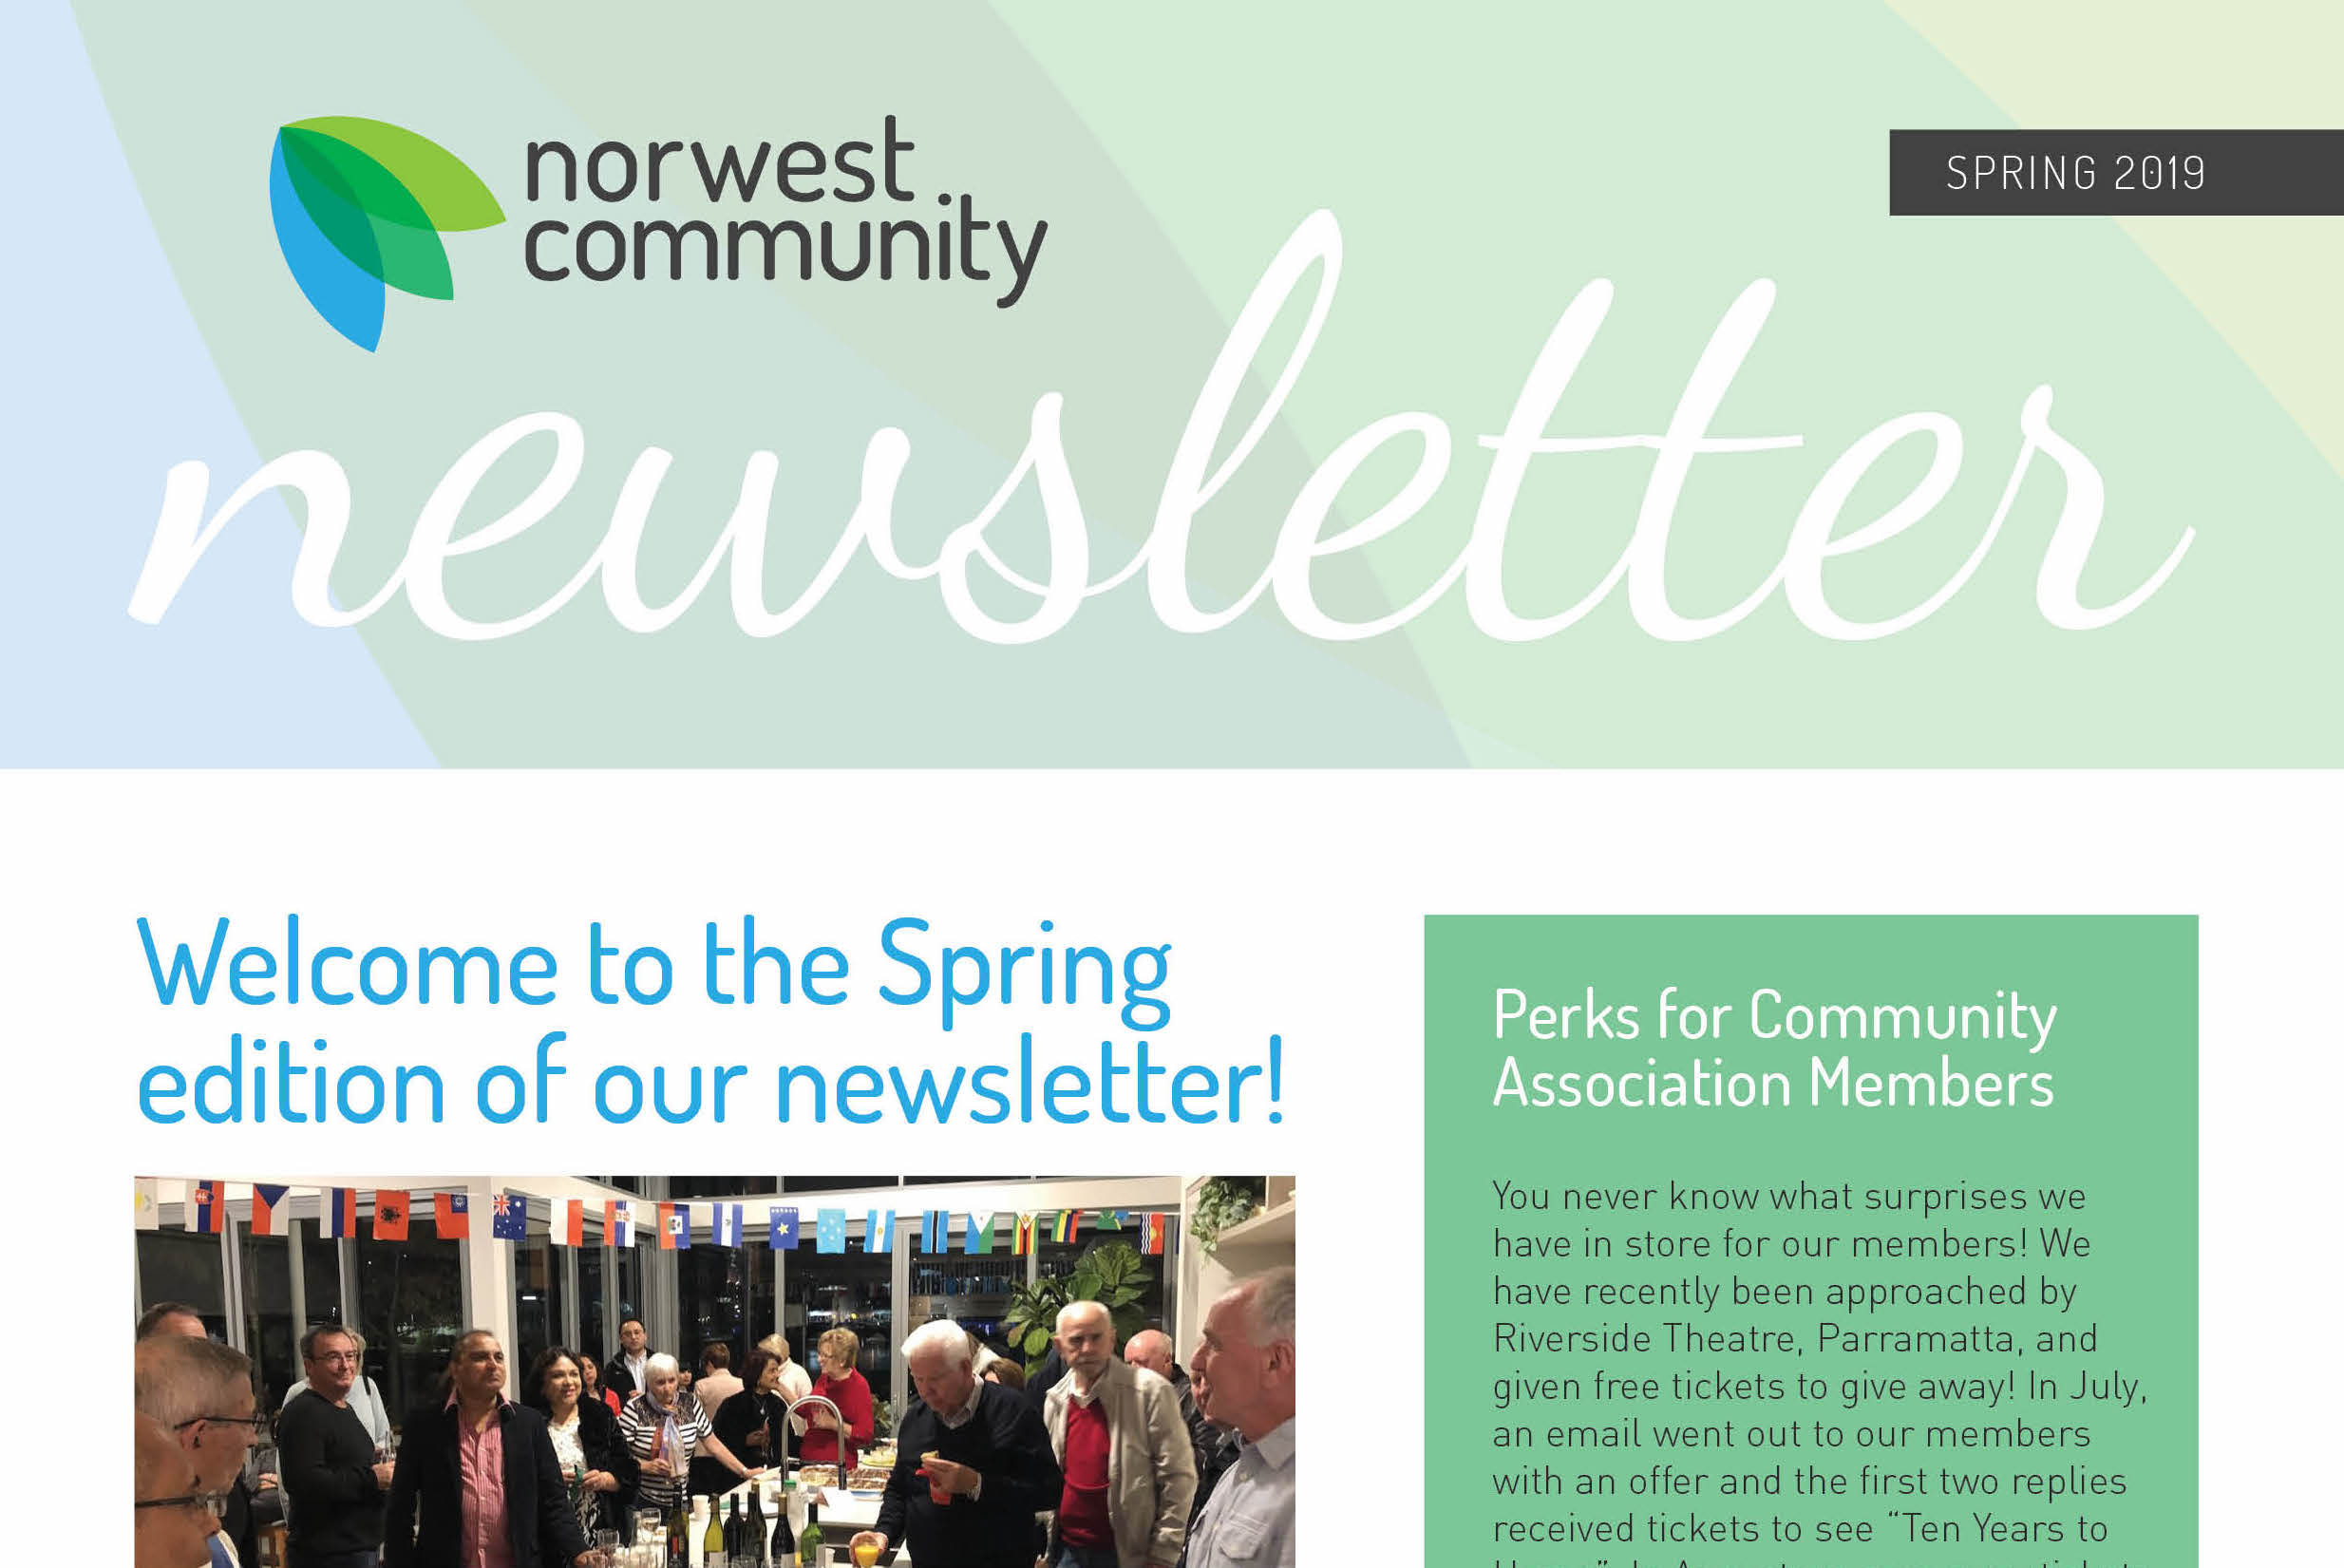 NC1018 Newsletter Spring 2019 web1 copy